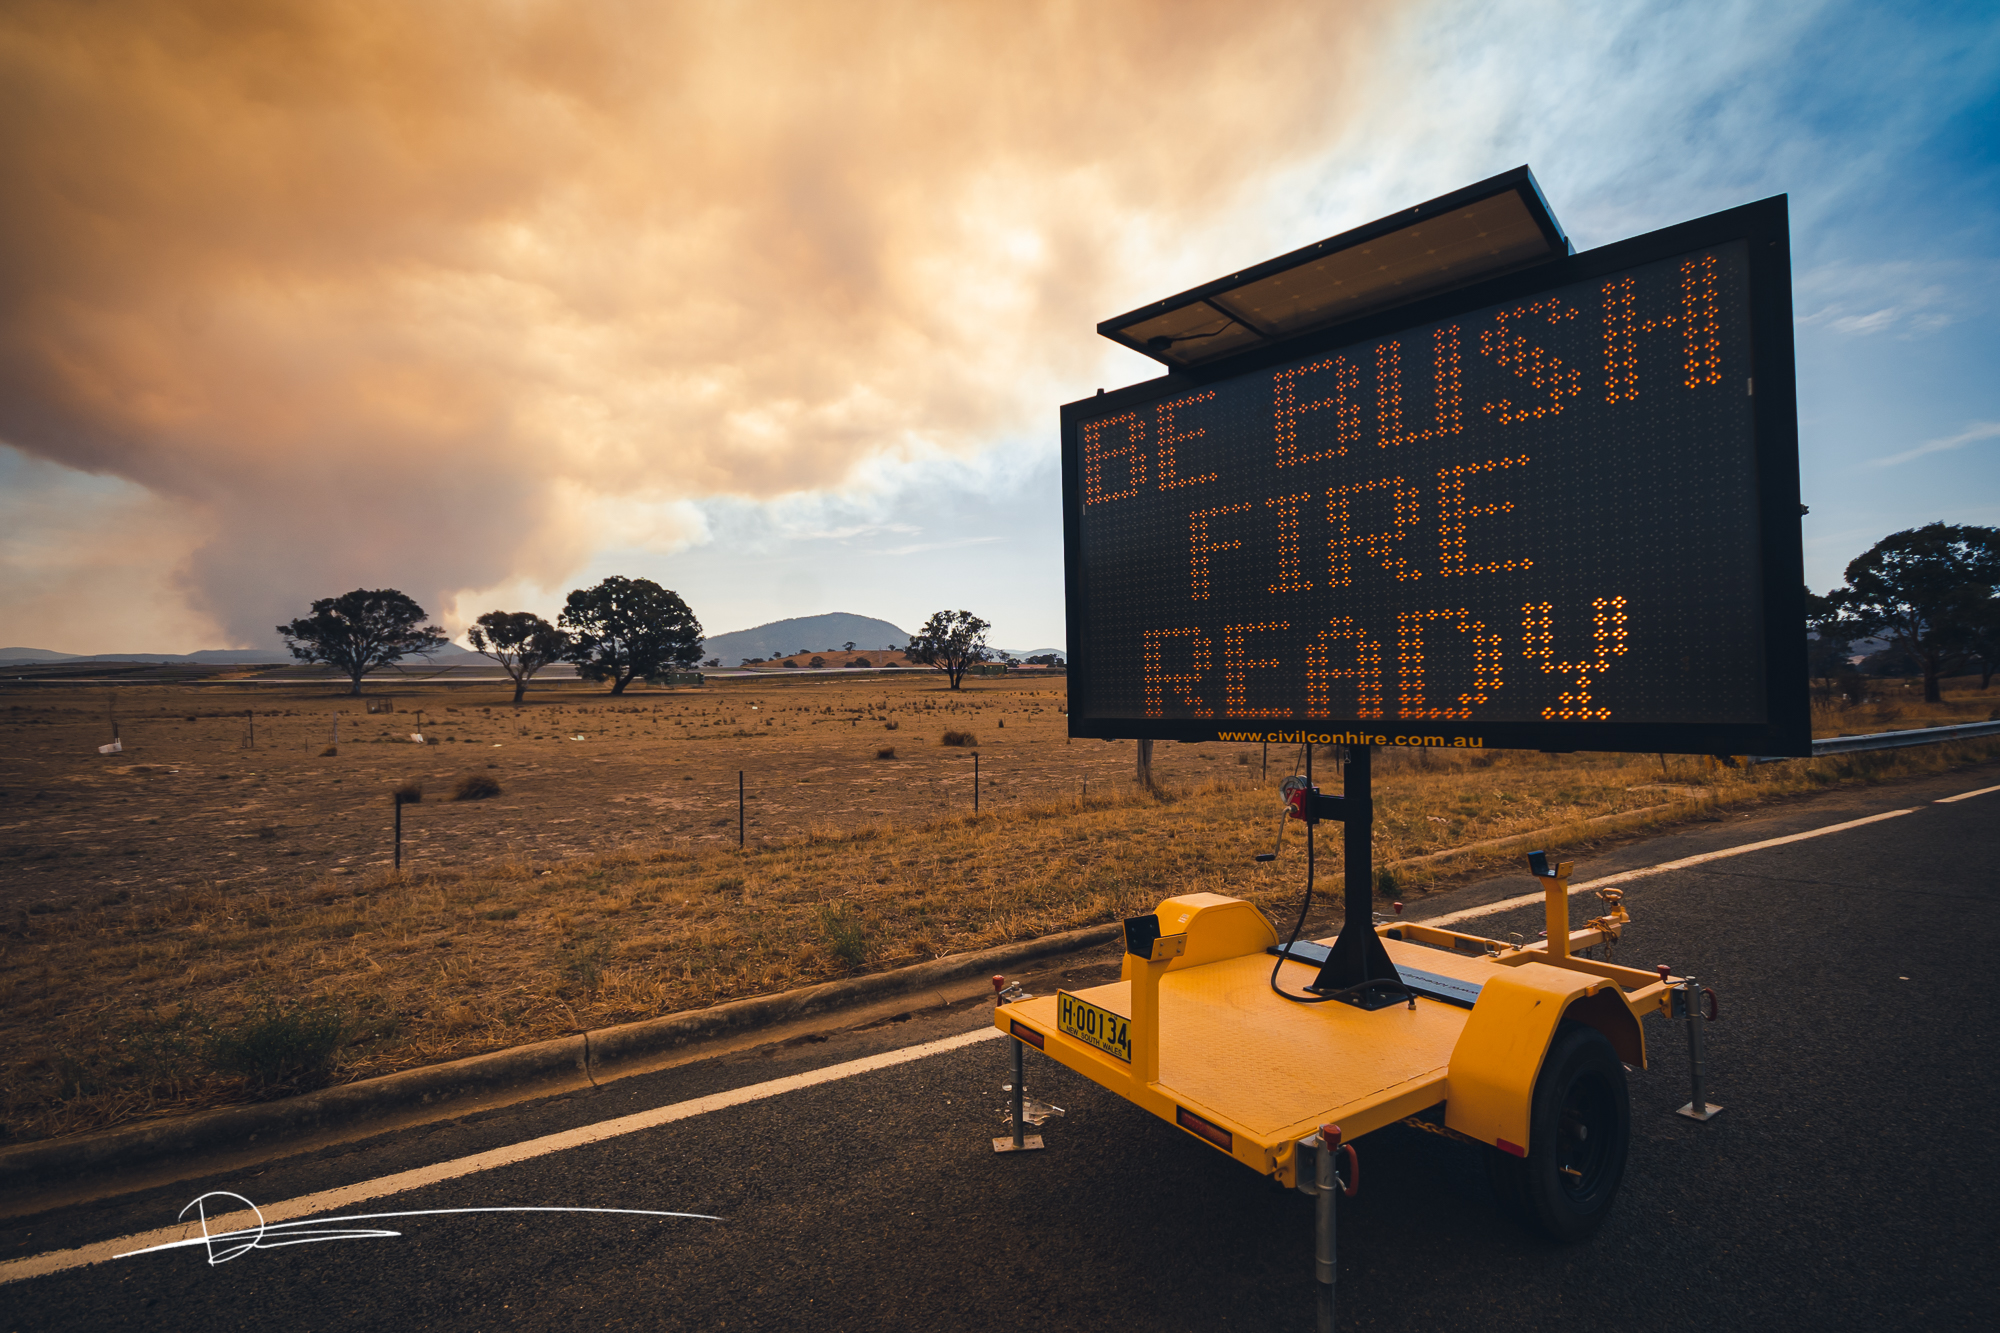 Photo shows smoke from a fire in the background, a dry paddock and a sign saying be Bushfire Ready.